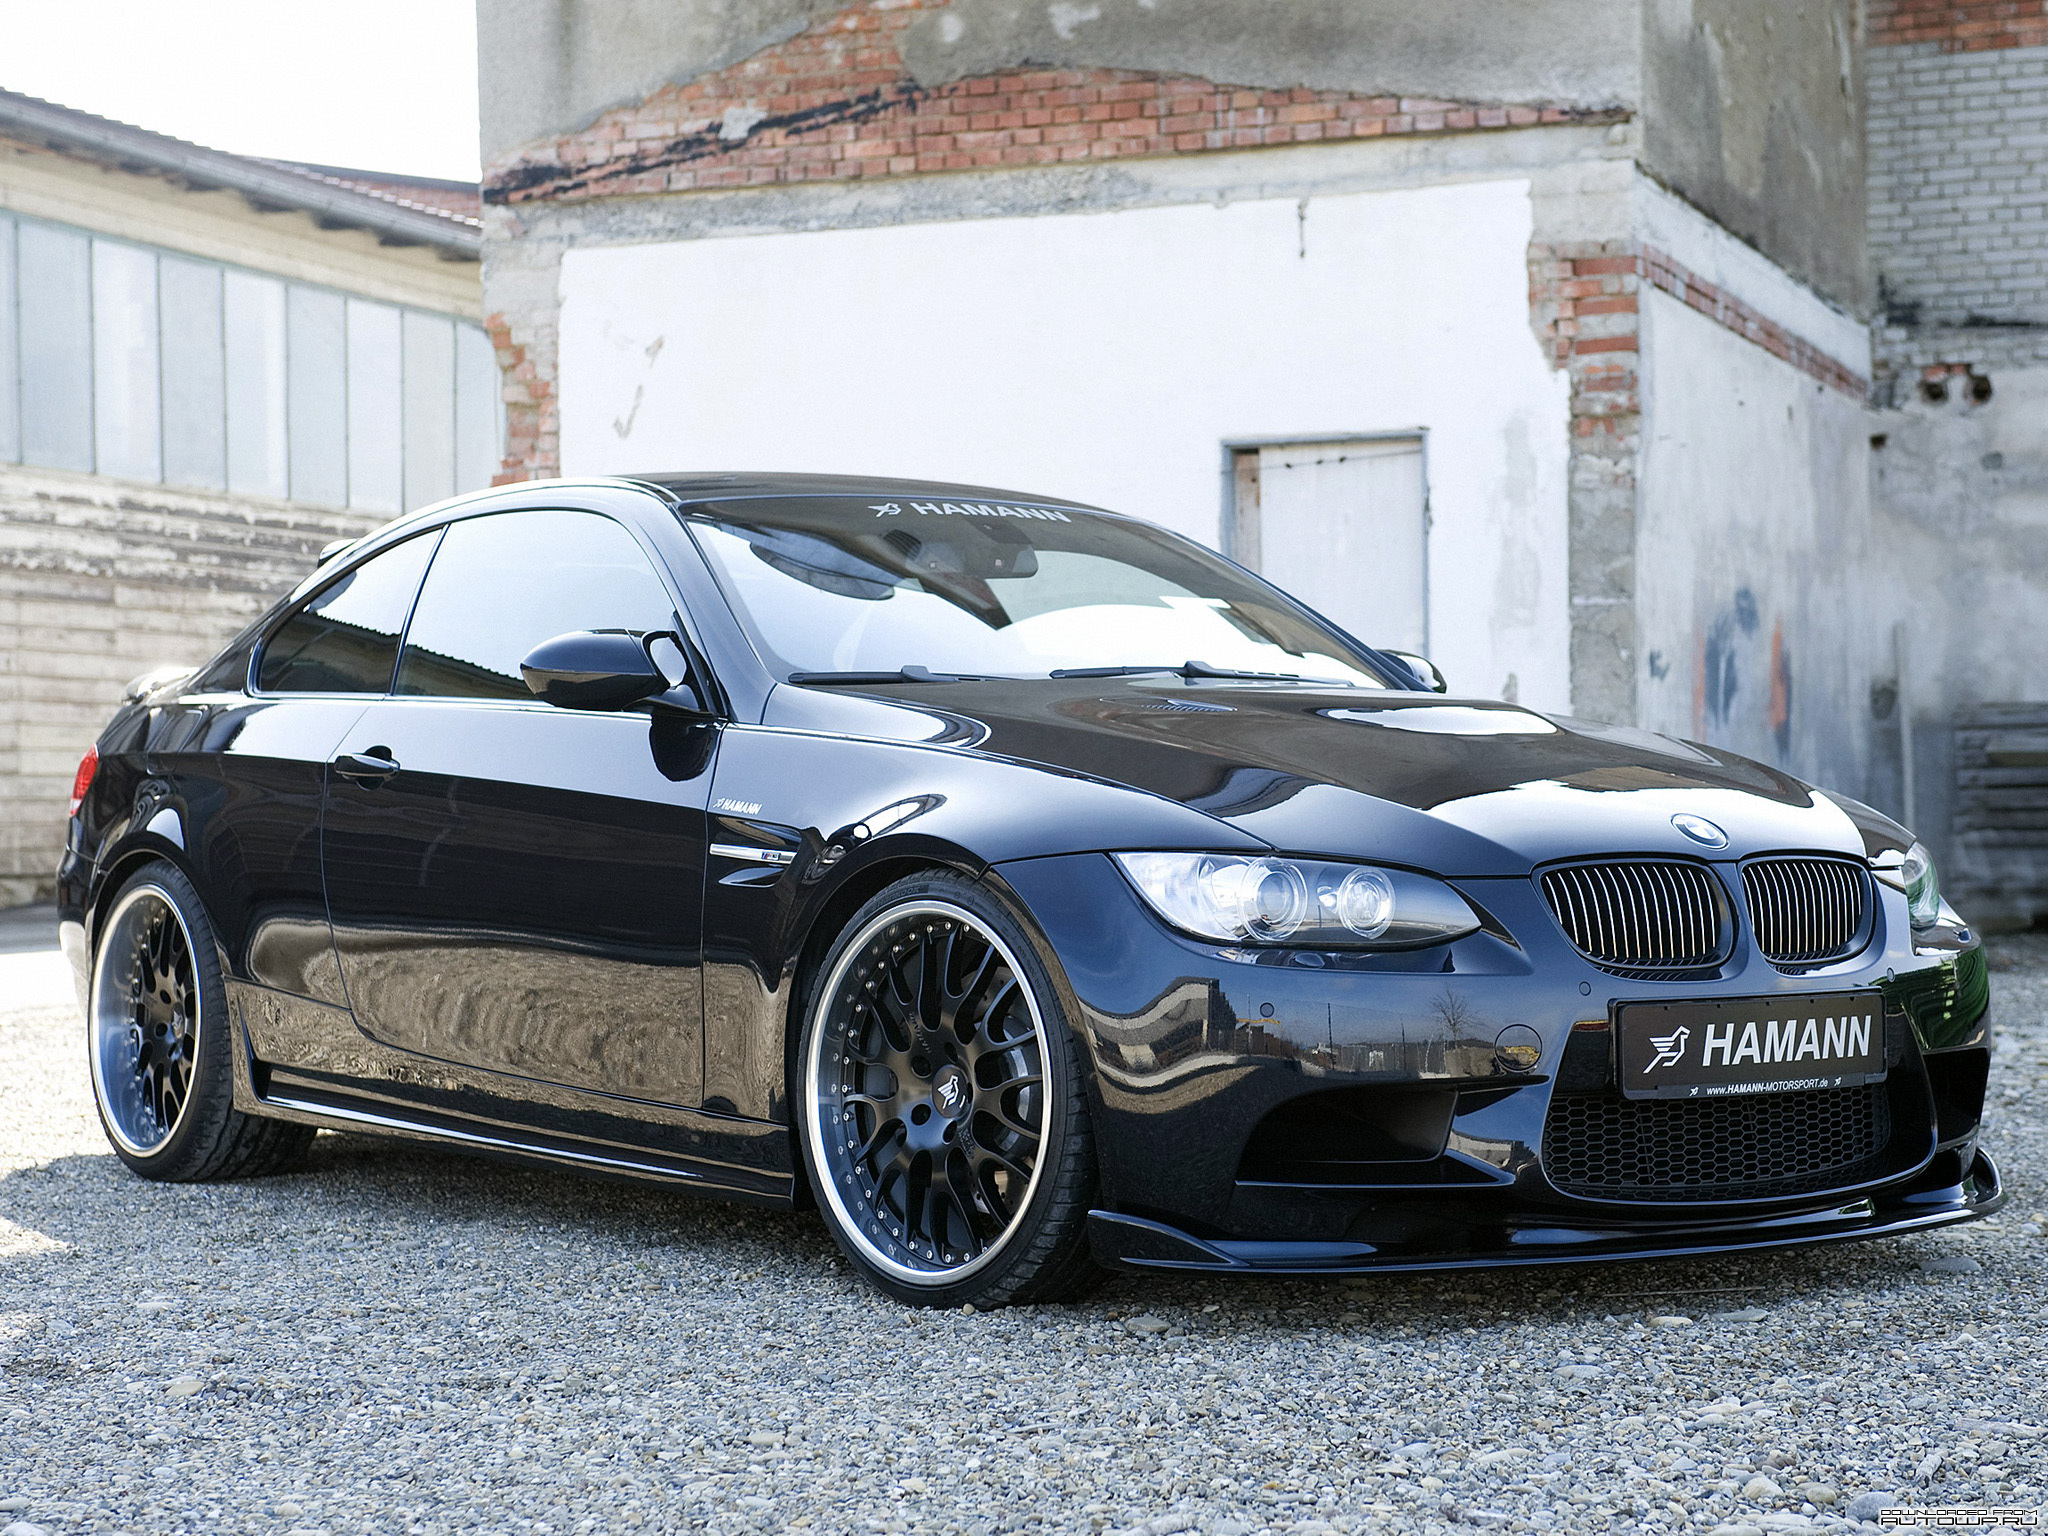 Hamann bmw m3 coupe e92 photos photogallery with 12 pics carsbase com